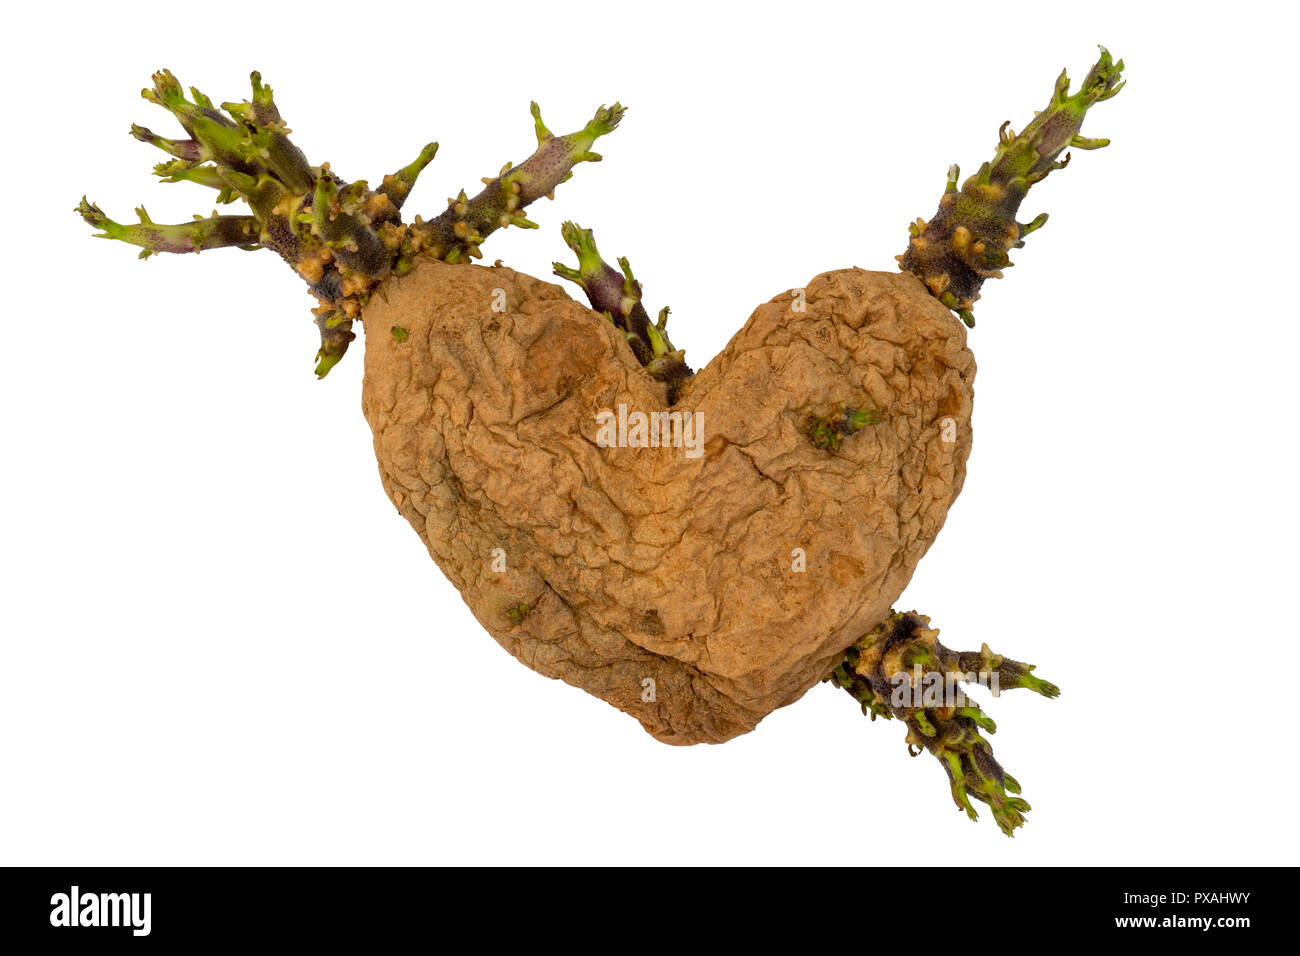 Heart in the form of a dried potato. - Stock Image